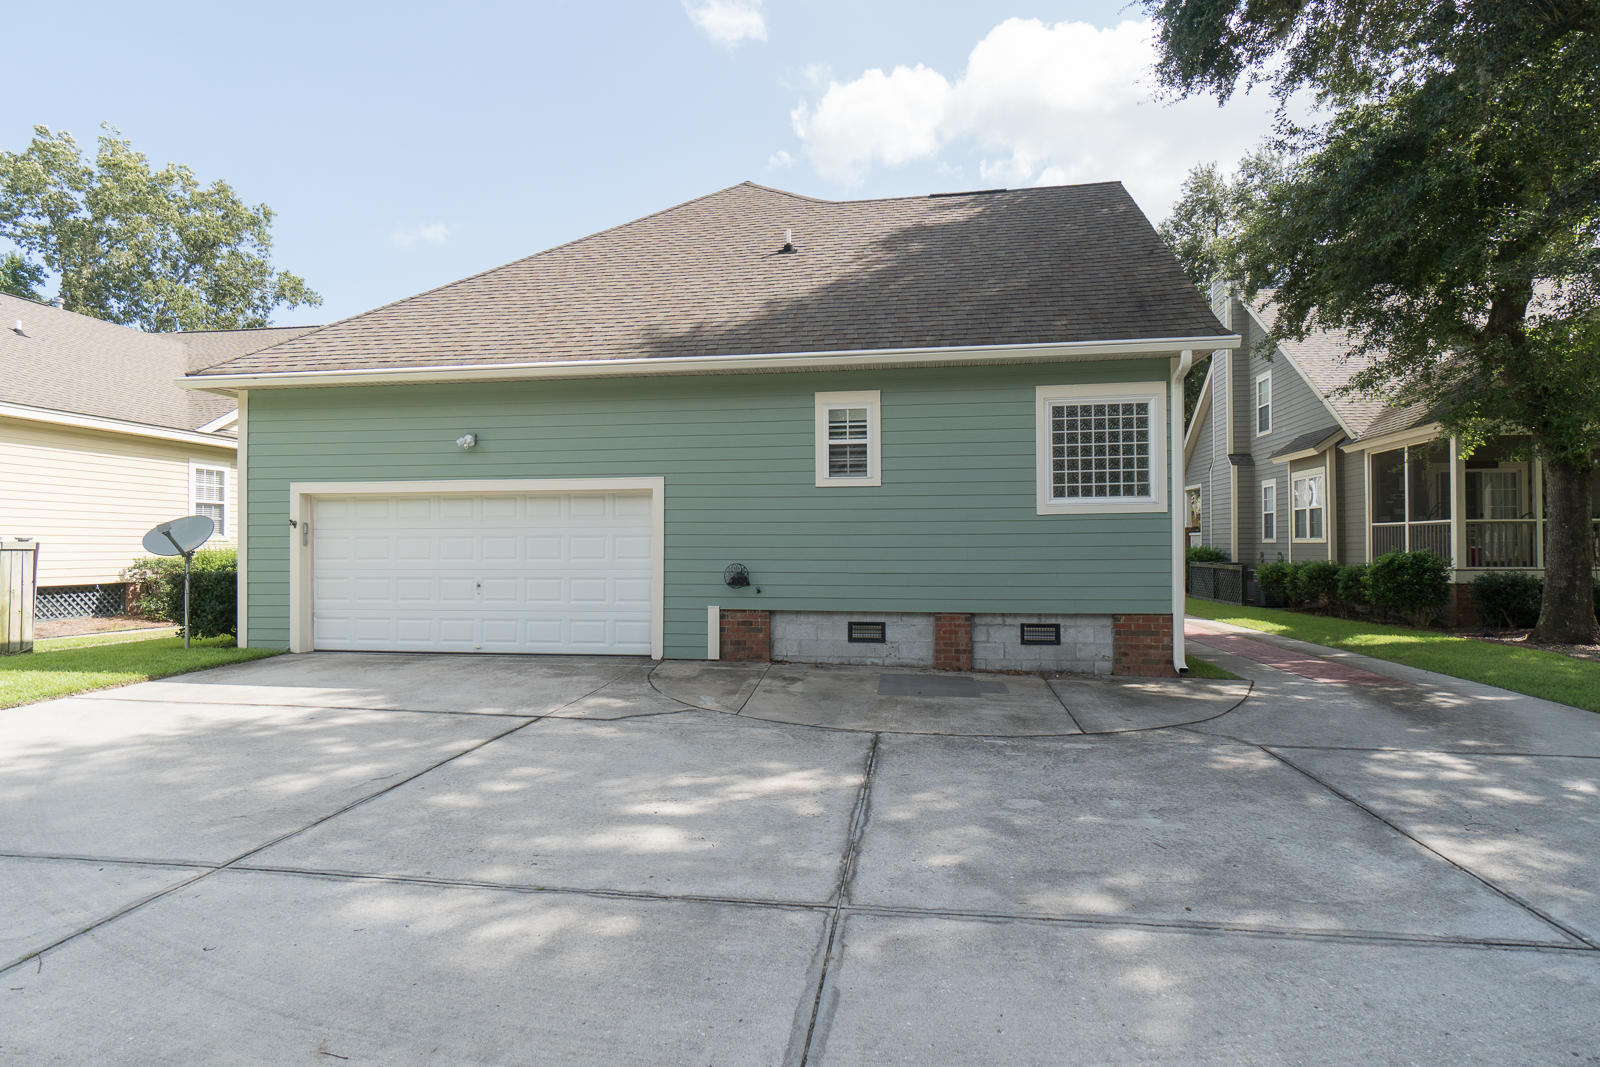 Ainsdale at Shadowmoss Plantation Homes For Sale - 233 Ainsdale, Charleston, SC - 15